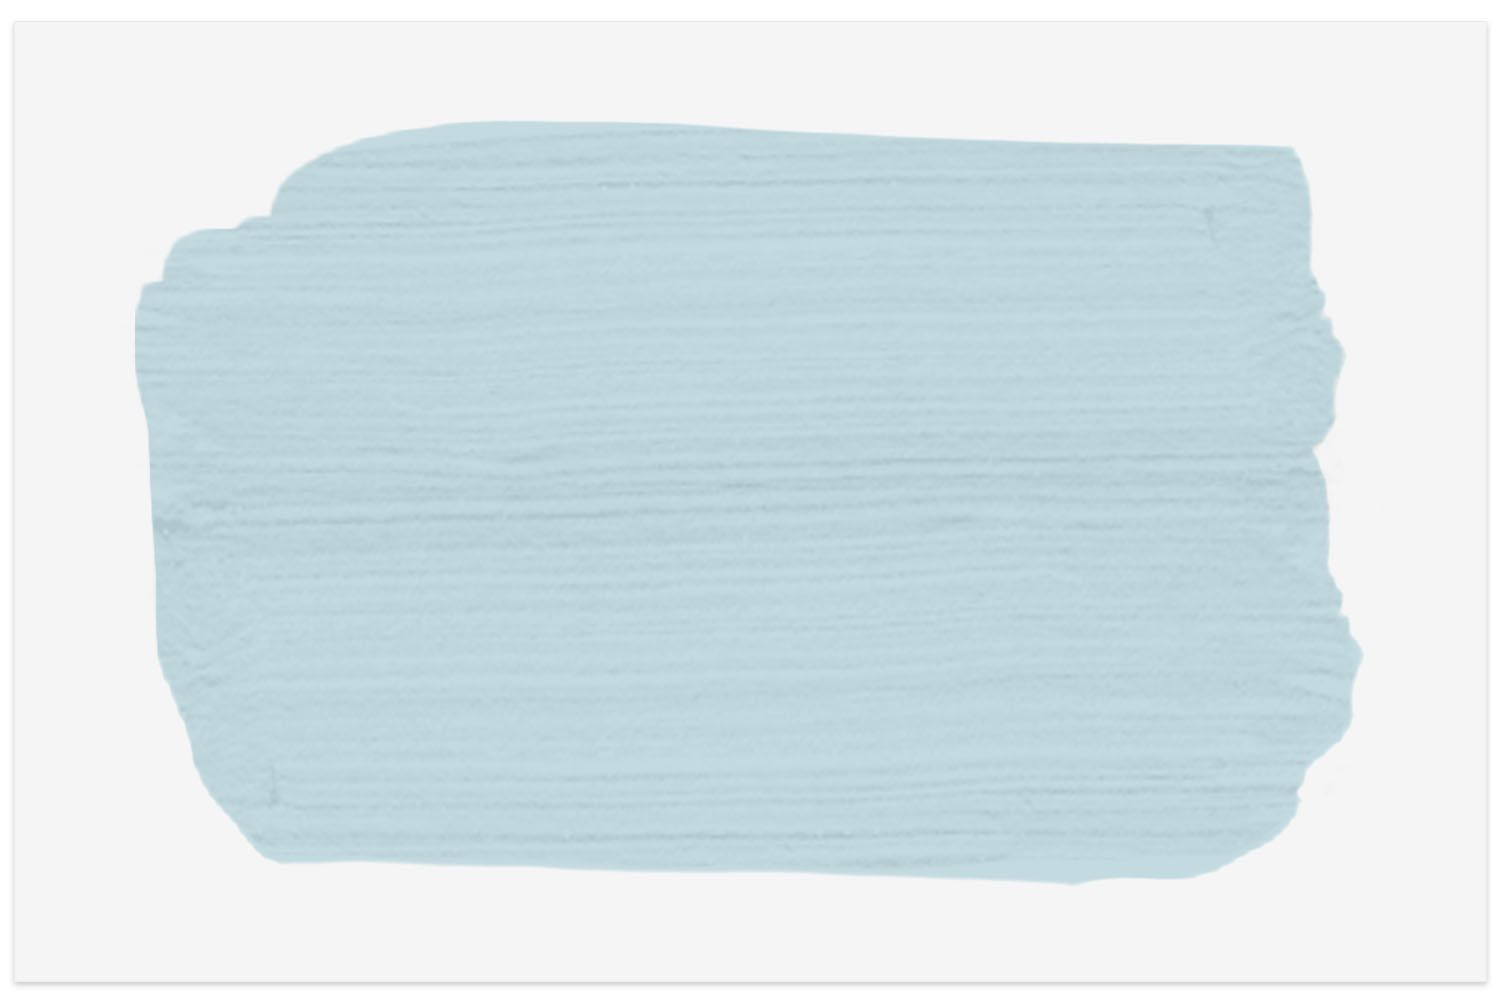 e8a4cf5ff10 Sherwin-Williams Atmospheric paint swatch. The Spruce